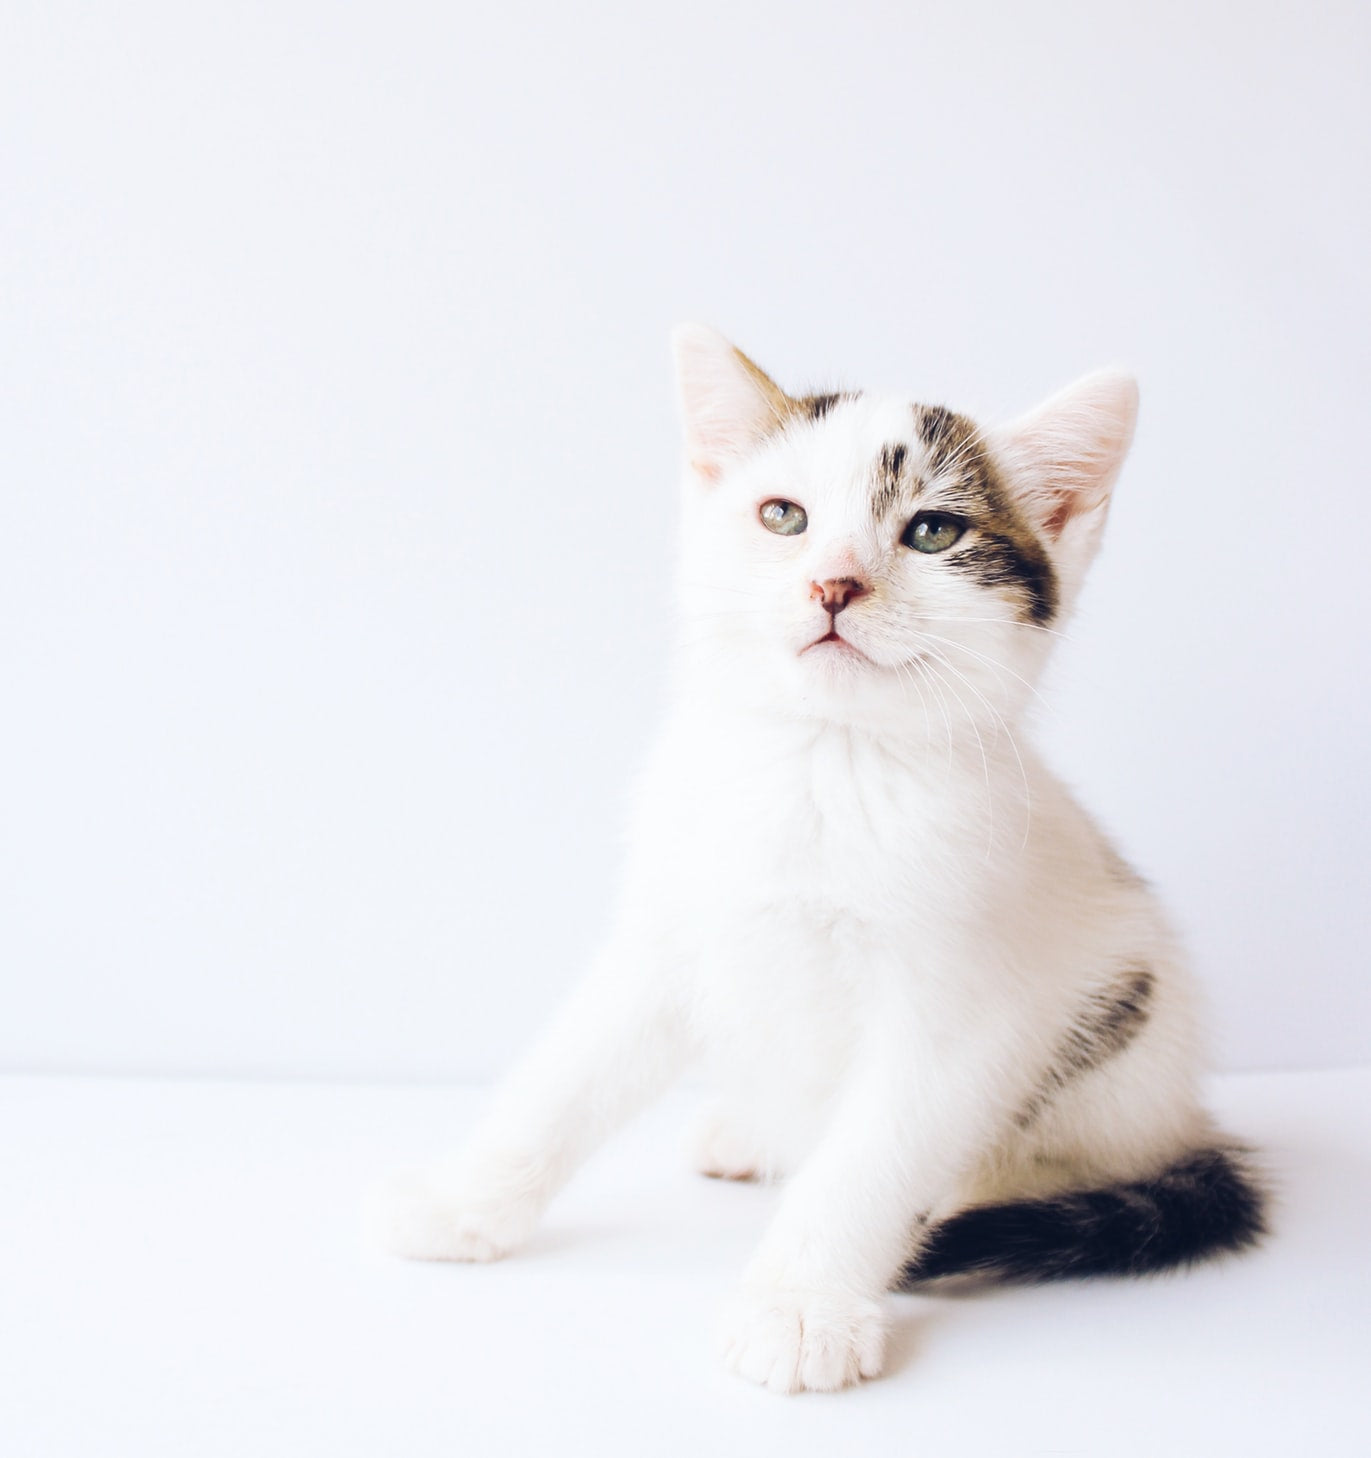 white and tabby young kitten with weight background